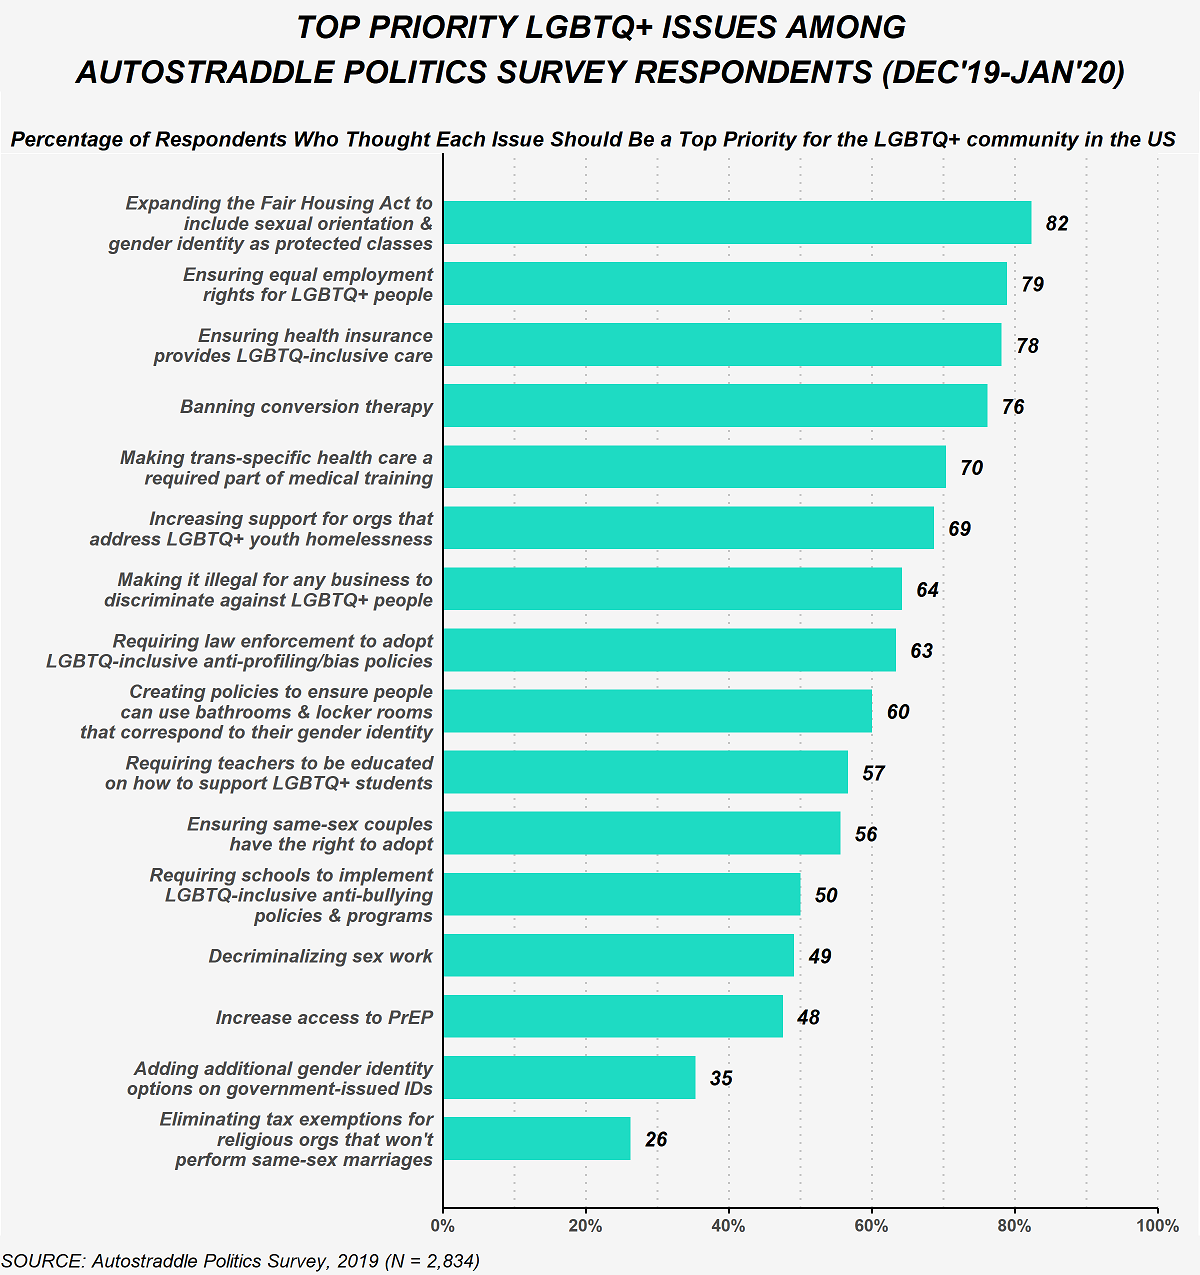 This figure shows the percent of Politics Survey respondents who selected each of the following LGBTQ+ issues as a top priority for the LGBTQ+ community in the U.S. 82% selected expanding the Fair Housing Act to include sexual orientation and gender identity as protected classes as a top priority issue. 79% selected ensuring equal employment rights for LGBTQ+ people as a top priority issue. 78% selected ensuring health insurance provides LGBTQ-inclusive care as a top priority issue. 76% selected banning conversion therapy as a top priority issue. 70% selected making trans-specific health care a required part of medical training as a top priority issue. 69% selected increasing support for organizations that address LGBTQ+ youth homelessness as a top priority issue. 64% selected making it illegal for any business to discriminate against LGBTQ+ people as a top priority issue. 63% selected requiring law enforcement to adopt LGBTQ-inclusive anti-profiling/bias policies as a top priority issue. 60% selected creating policies to ensure people can use bathrooms and locker rooms that correspond to their gender identity as a top priority issue. 57% selected requiring teachers to be educated on how to support LGBTQ+ students as a top priority issue. 56% selected ensuring same-sex couples have the right to adopt as a top priority issue. 50% selected requiring schools to implement LGBTQ-inclusive anit-bullying policies and programs as a top priority issue. 49% selected decriminalizing sex work as a top priority issue. 48% selected increasing access to PrEP as a top priority issue. 35% selected adding additional gender identity options on government-issued IDs as a top priority issue. 26% selected eliminating tax exemptions for religious organizations that won't perform same-sex marriages as a top priority issue.